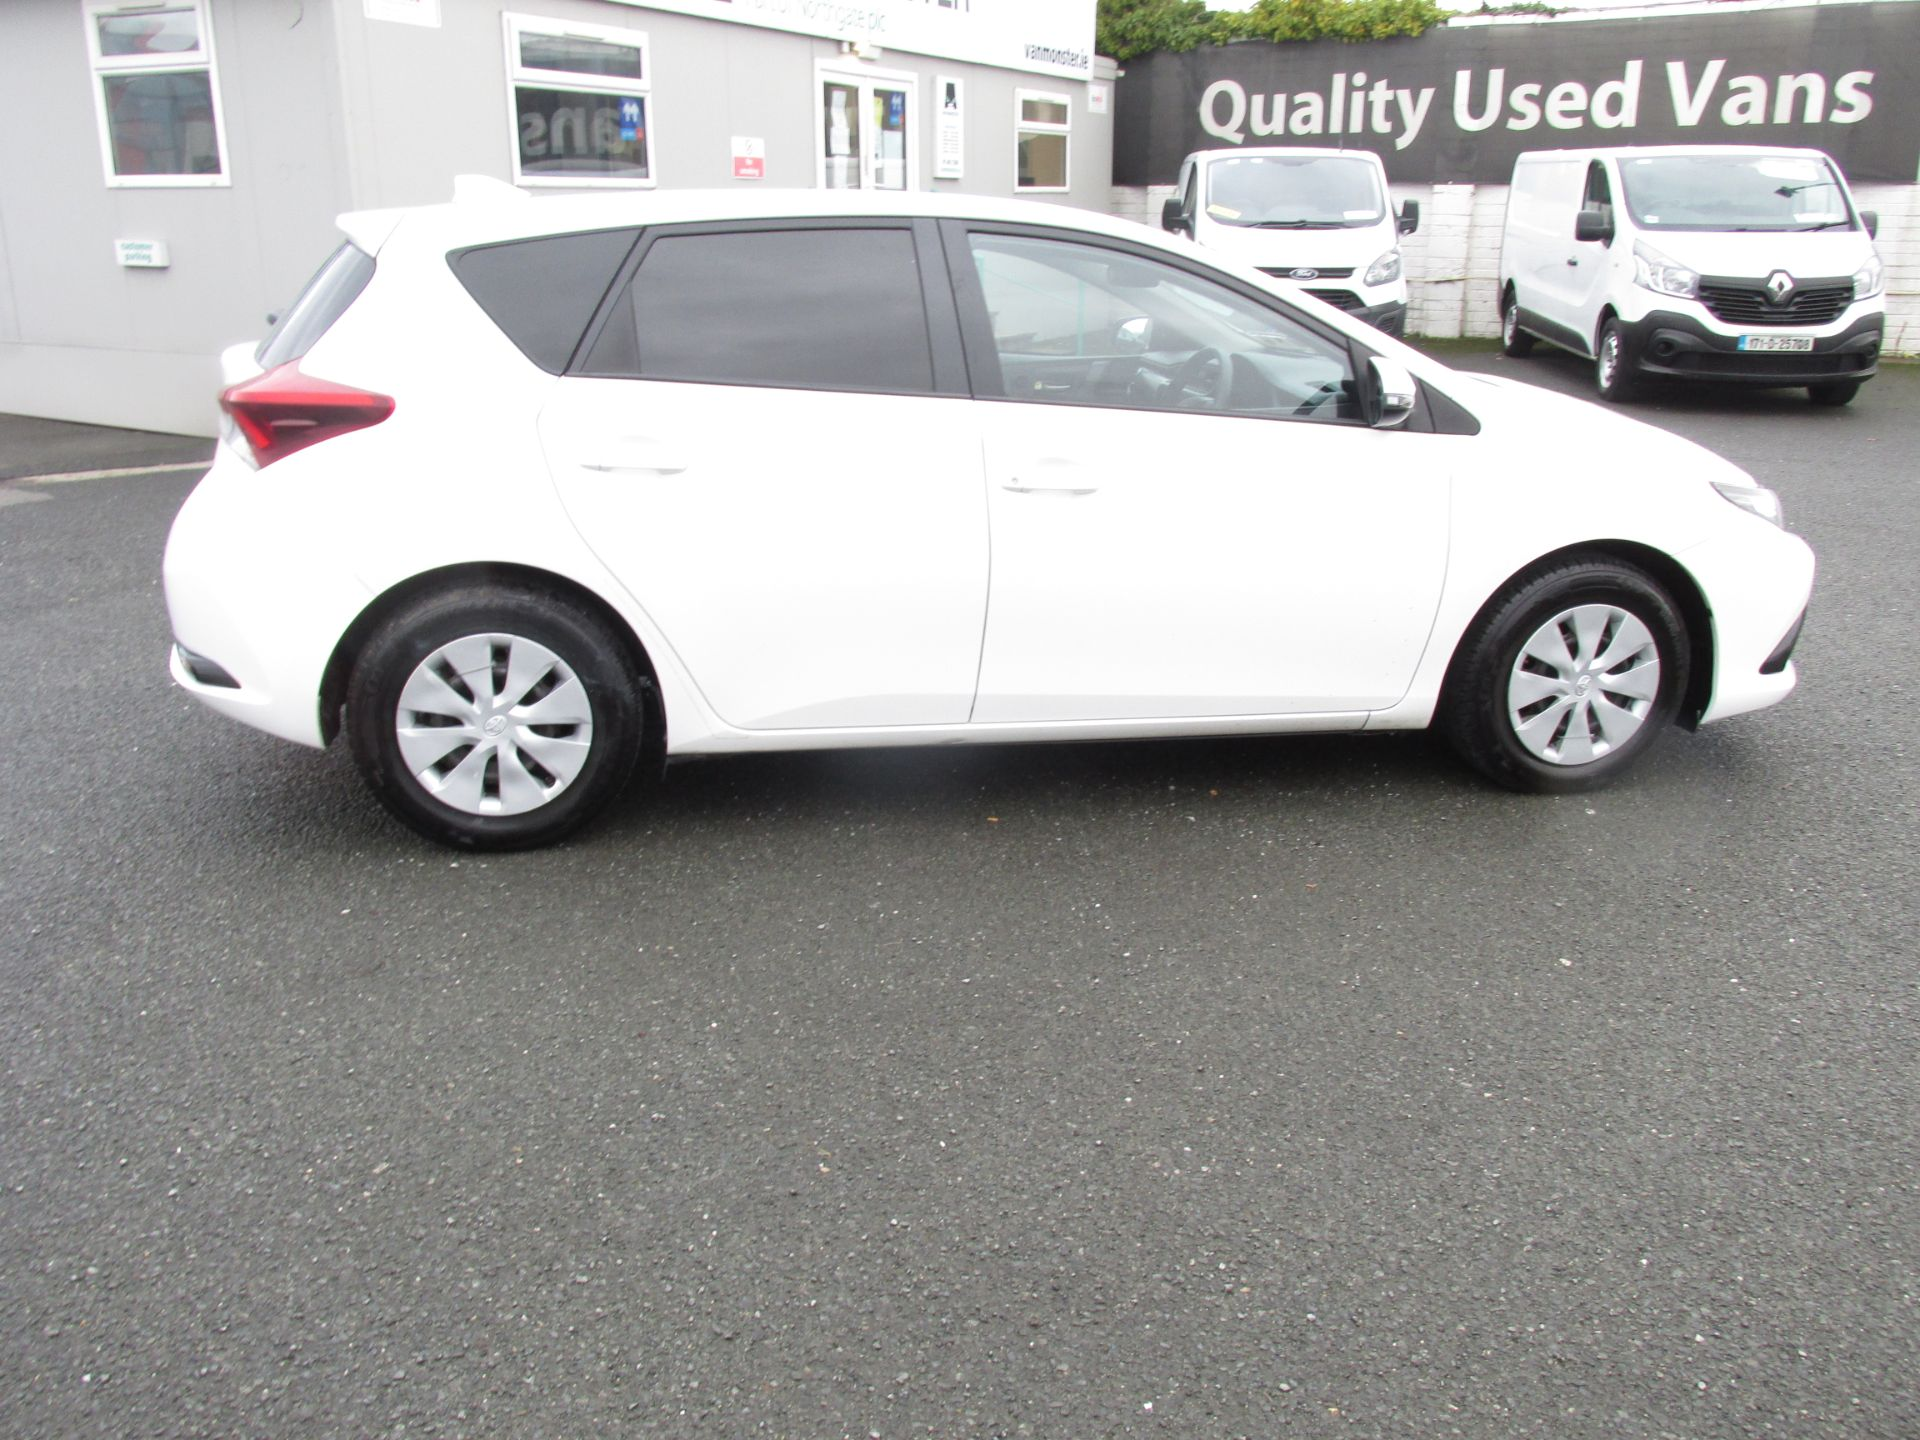 2016 Toyota Auris 1.4d-4d Terra 4DR click and deliver call sales for more info (162D20564) Image 8